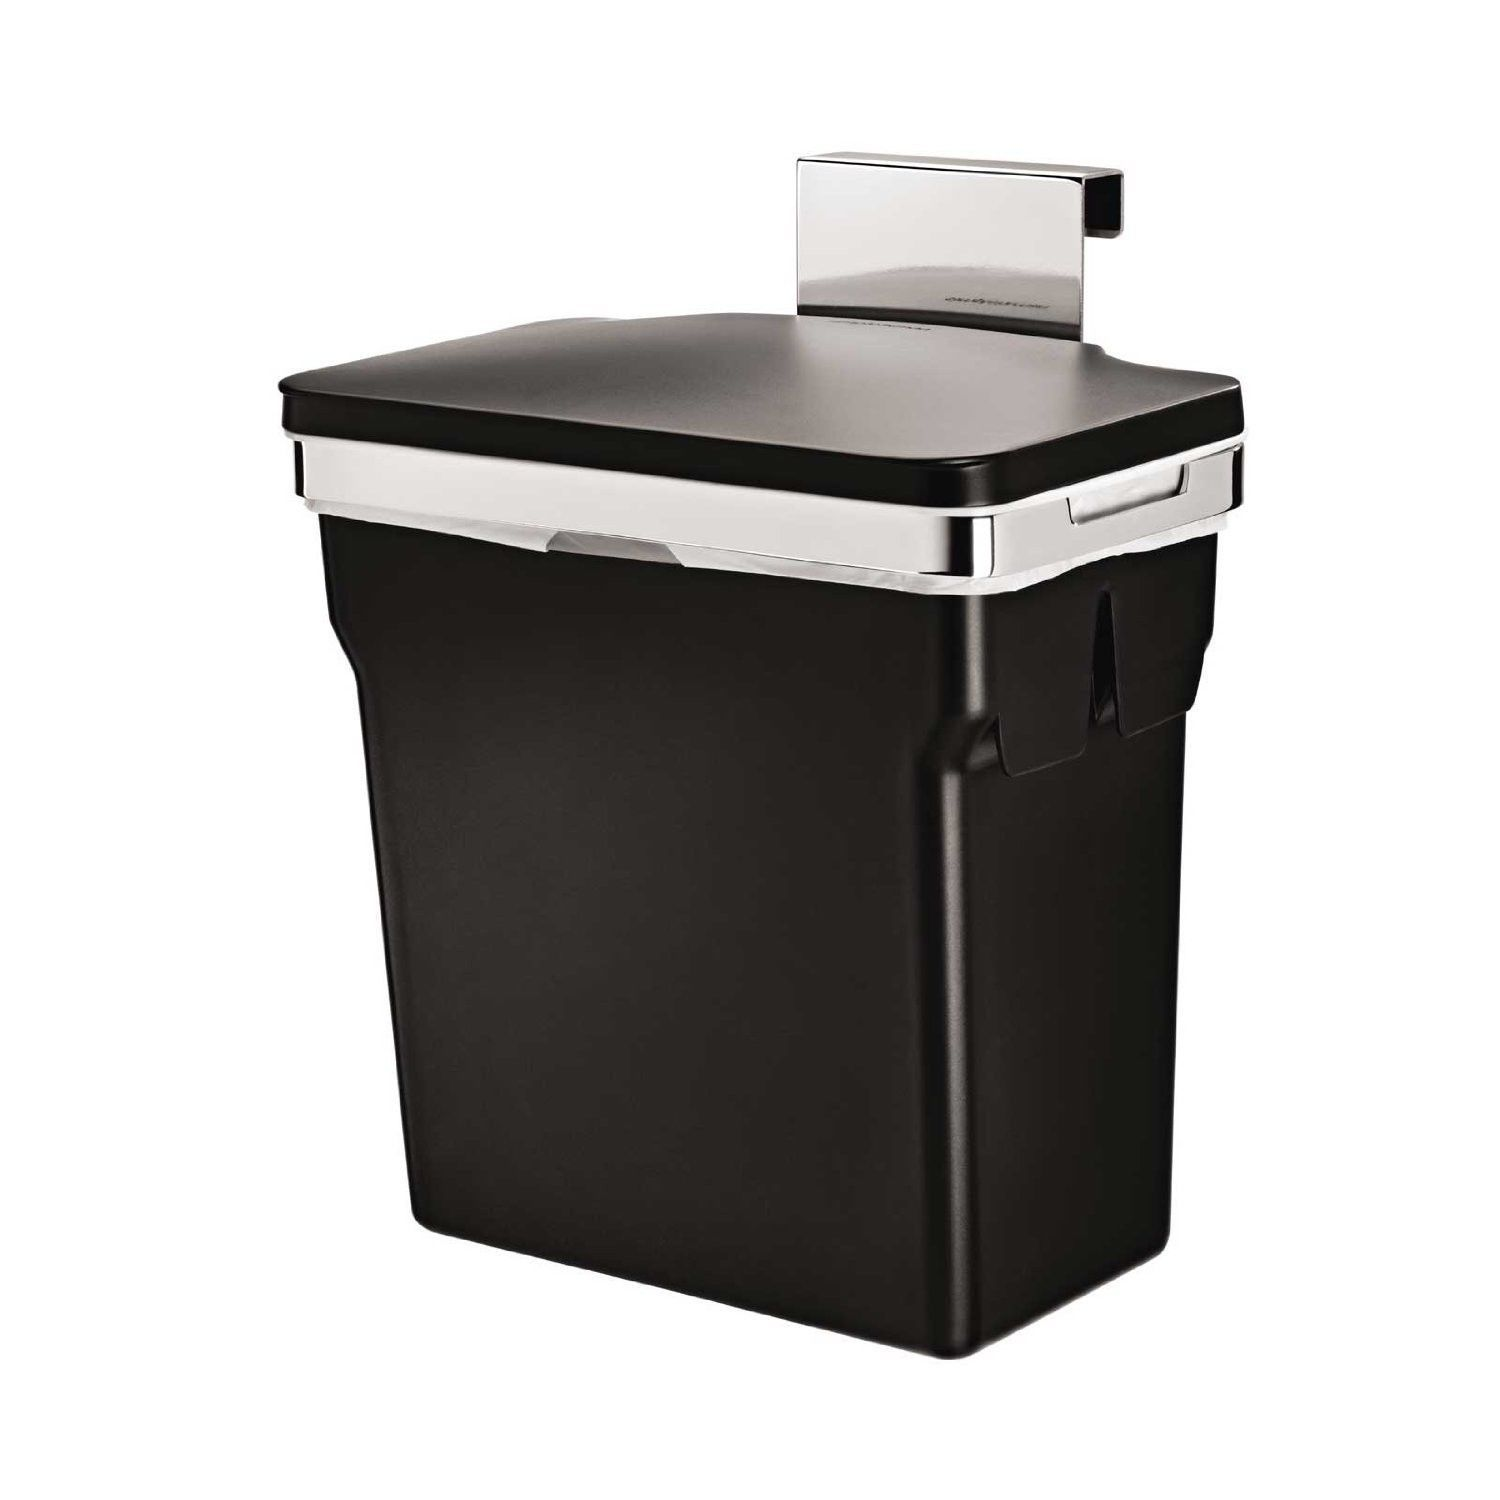 Cabinet Trash Can Hanging Cabinet Mount Waste Bin Kitchen Trash Cans